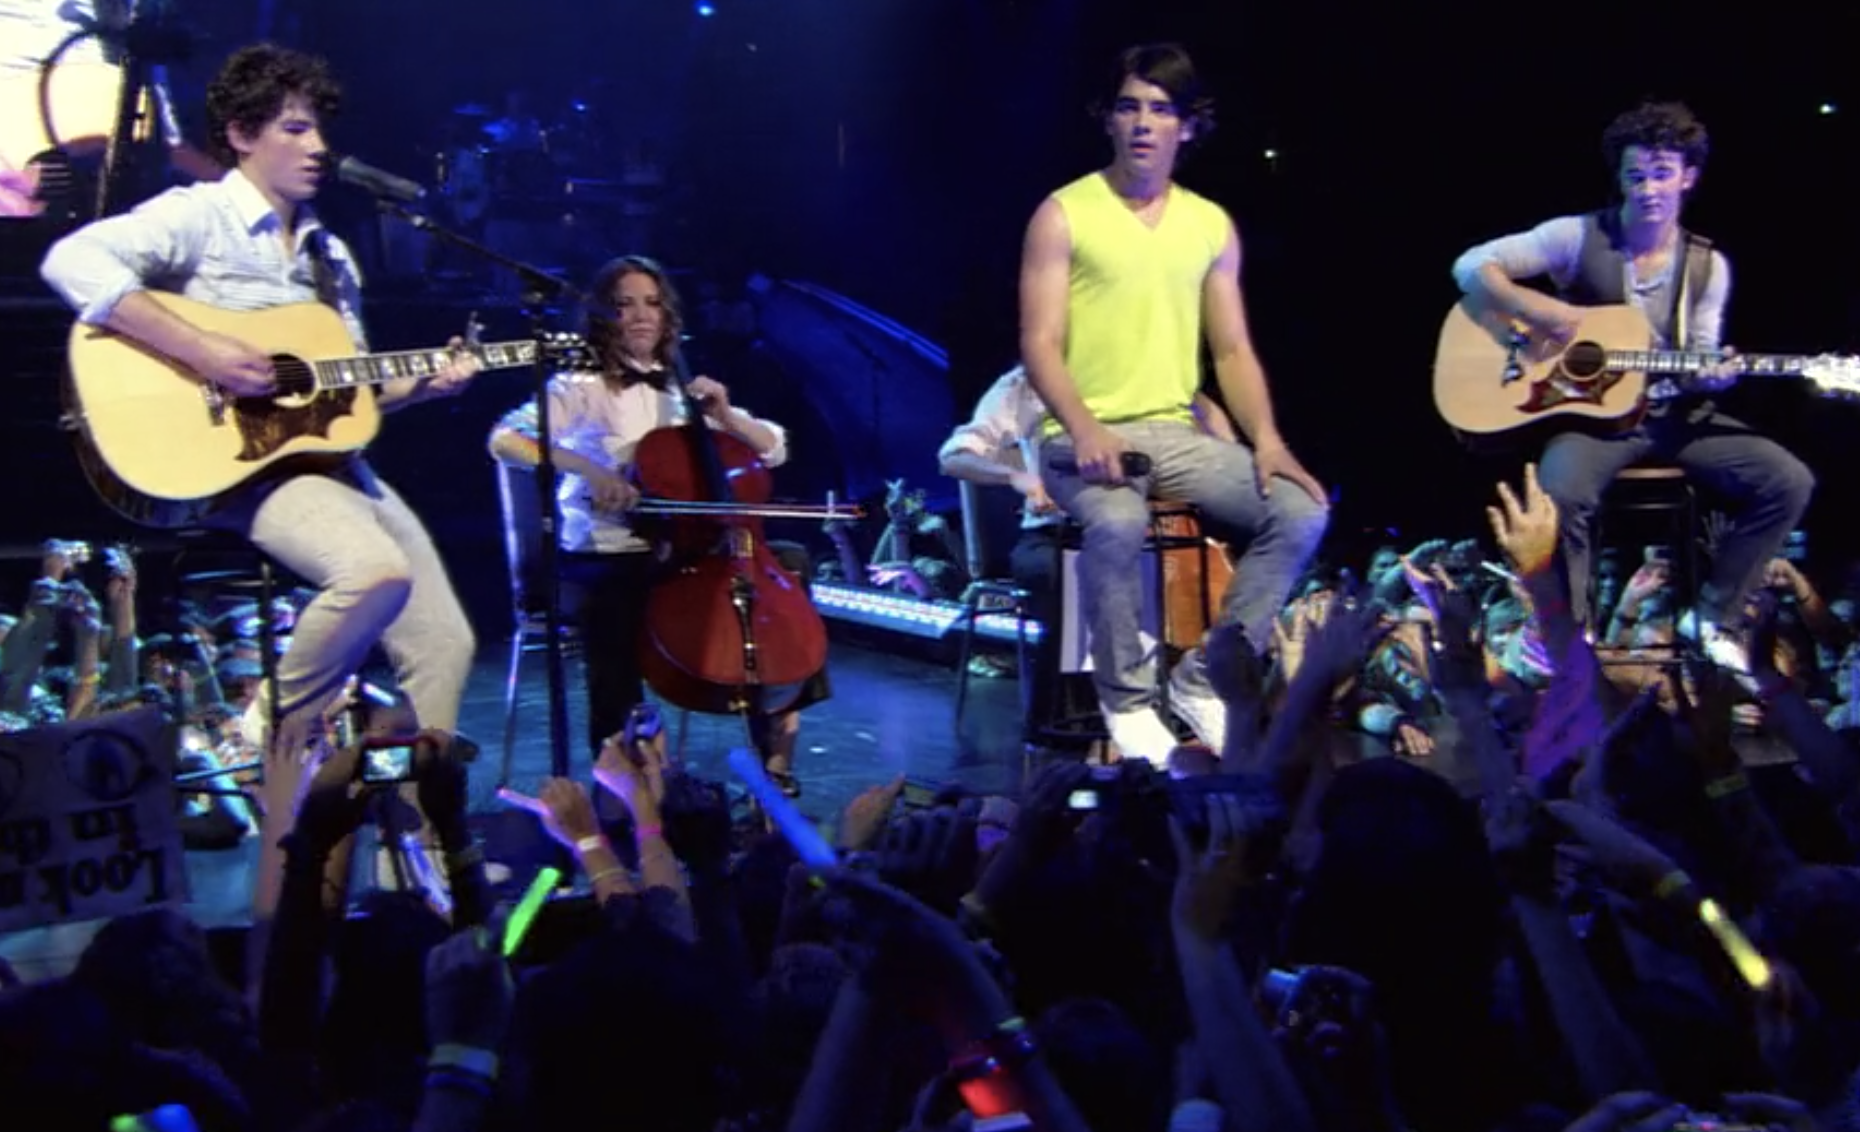 The Jonas Brothers sit down to perform a song as the crowd cheers them on